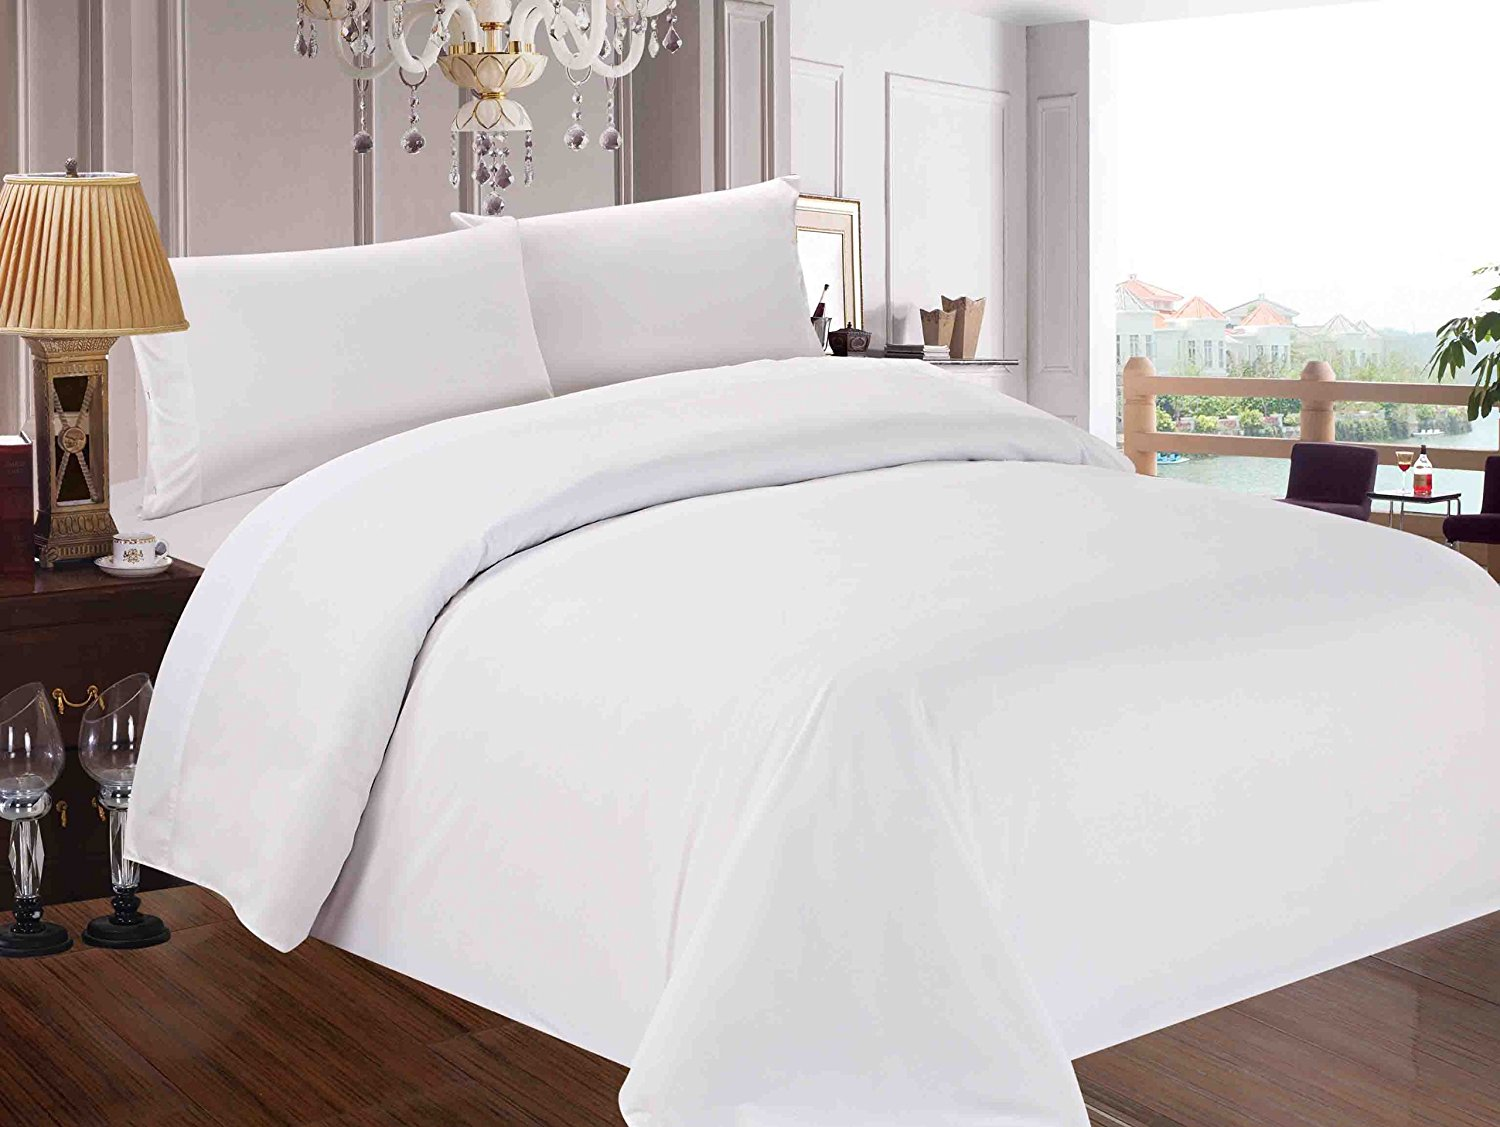 Linen Duvet Covers | White Duvet Cover Full Size | White Duvet Cover